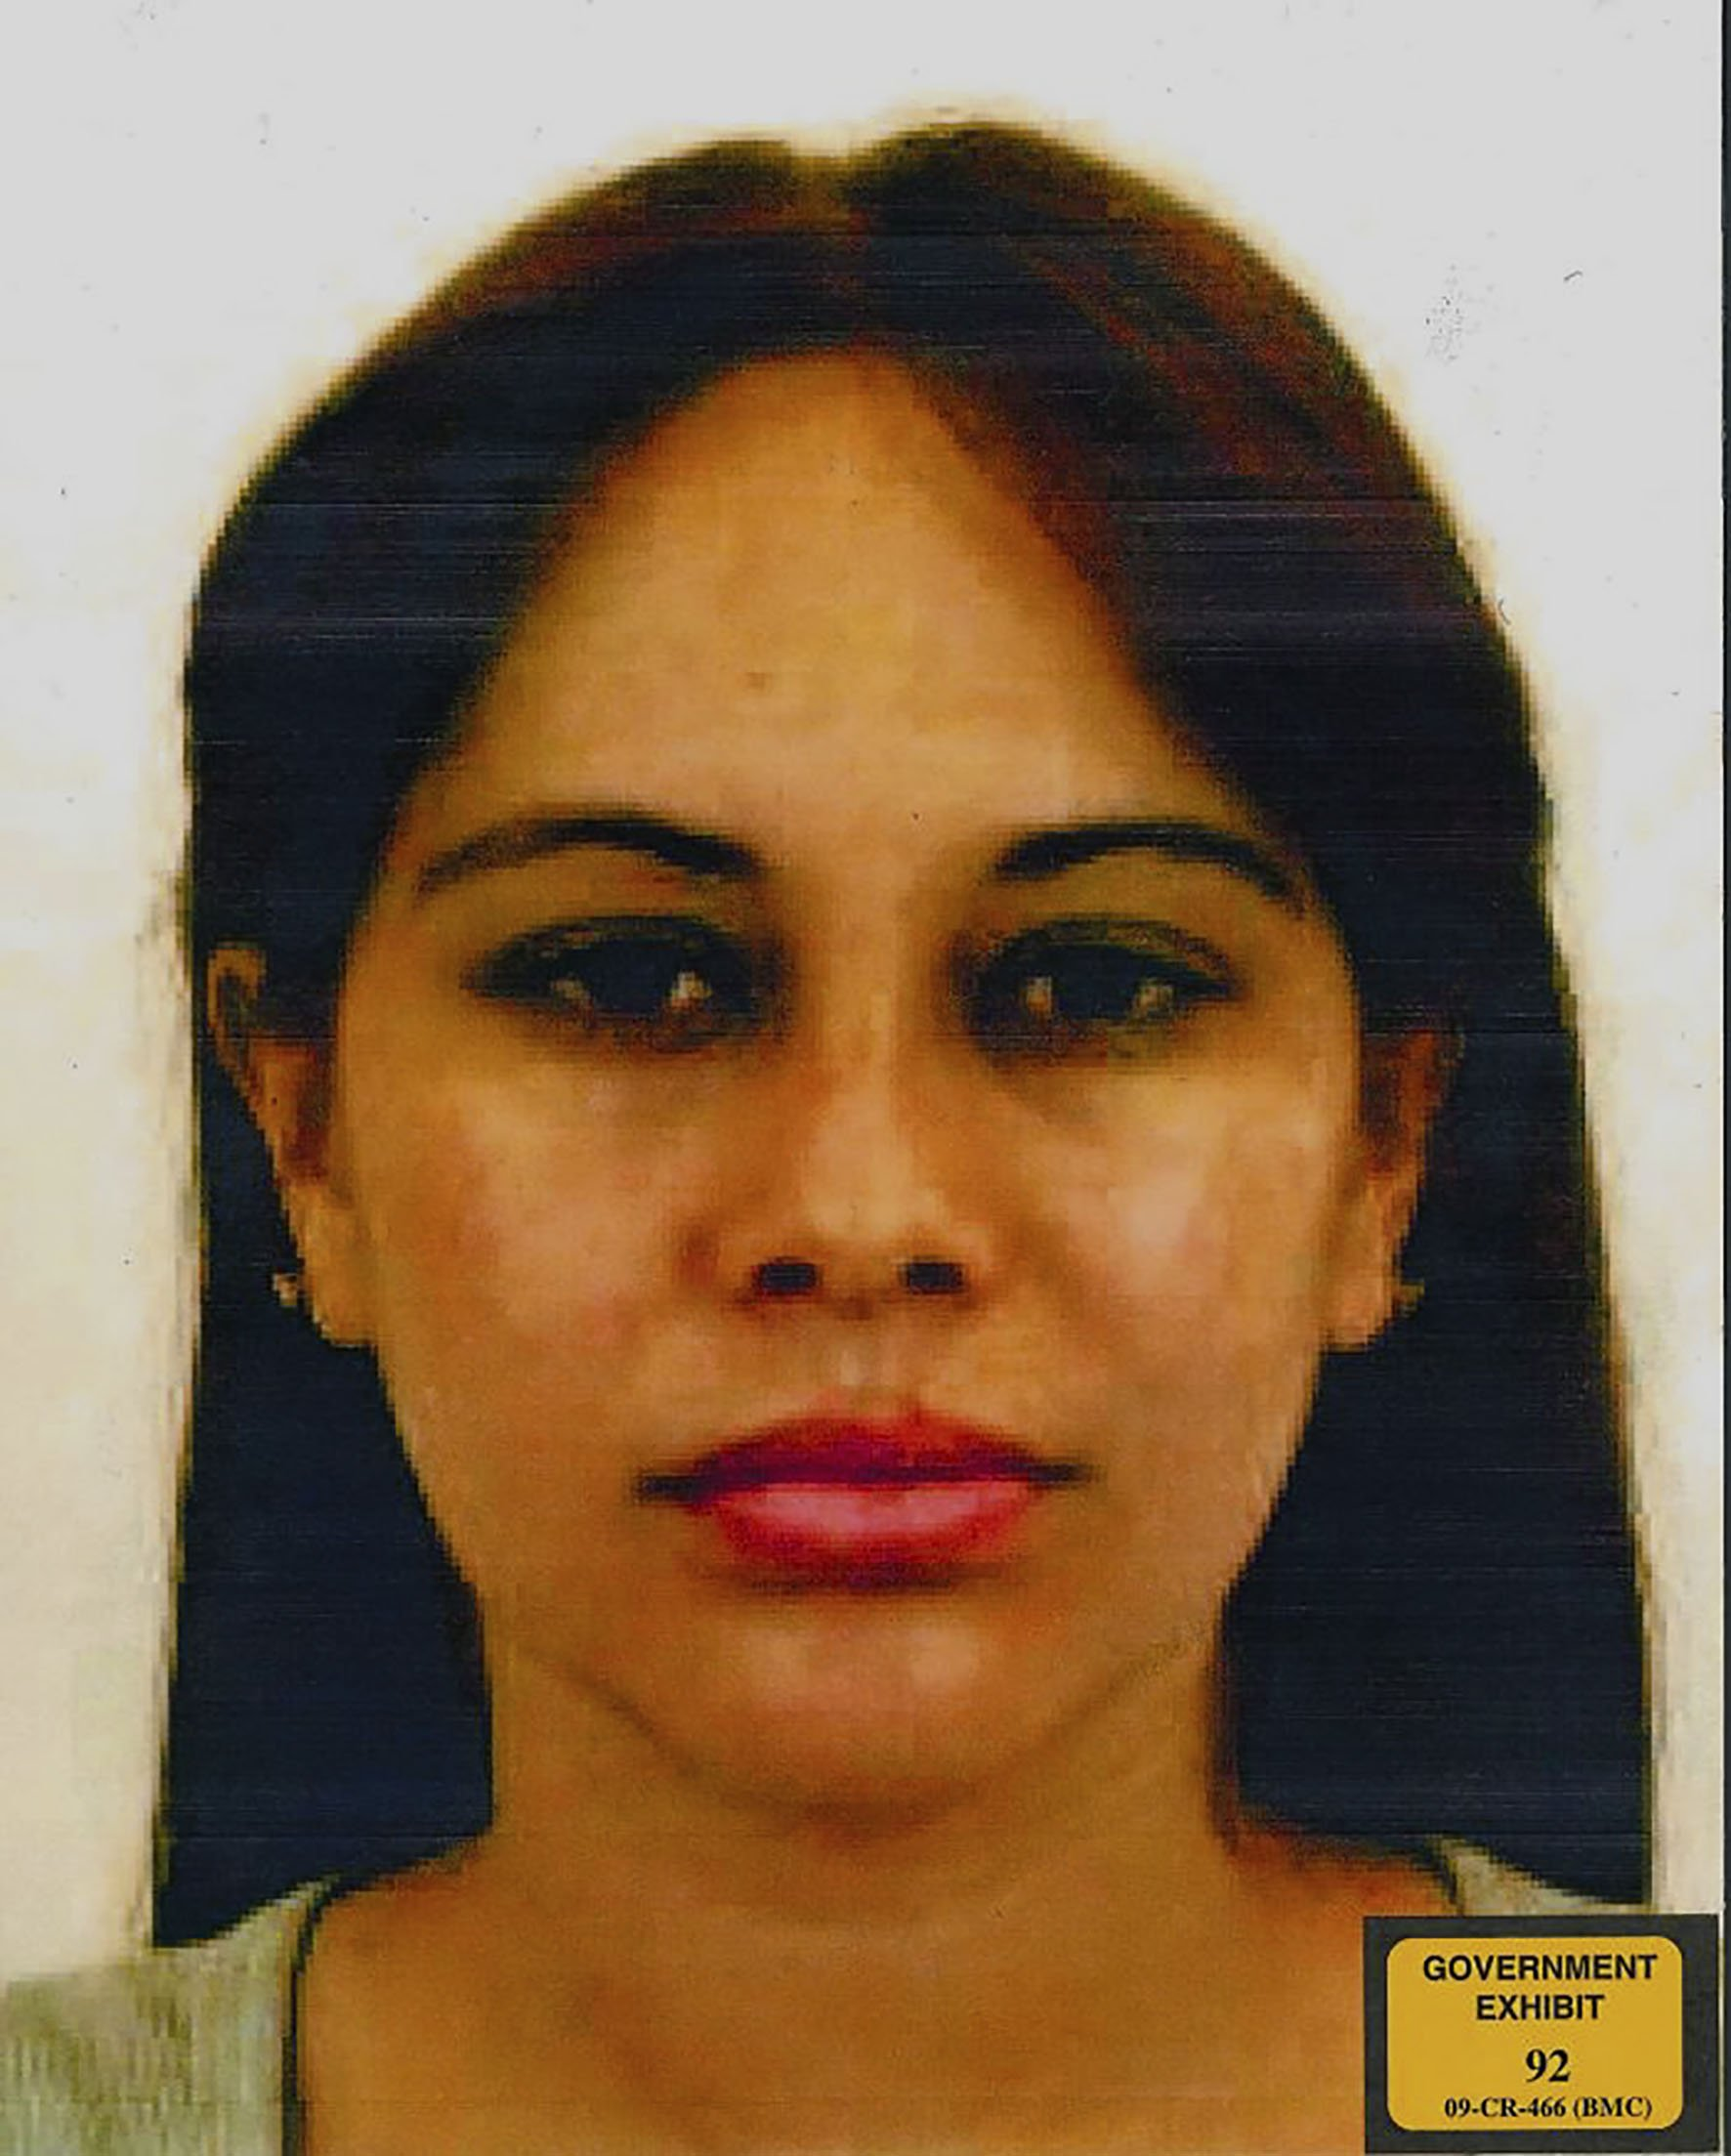 This Eastern District of New York (EDNY) undated evidence handout photo, submitted as evidence, and obtained Jan. 17, 2019 shows Lucero Guadalupe Sánchez López, 29, a Mexican former lover of Joaquin Chapo Guzman, who took the stand on the trial of the Mexican druglord as a government witness on Jan. 17, 2019.